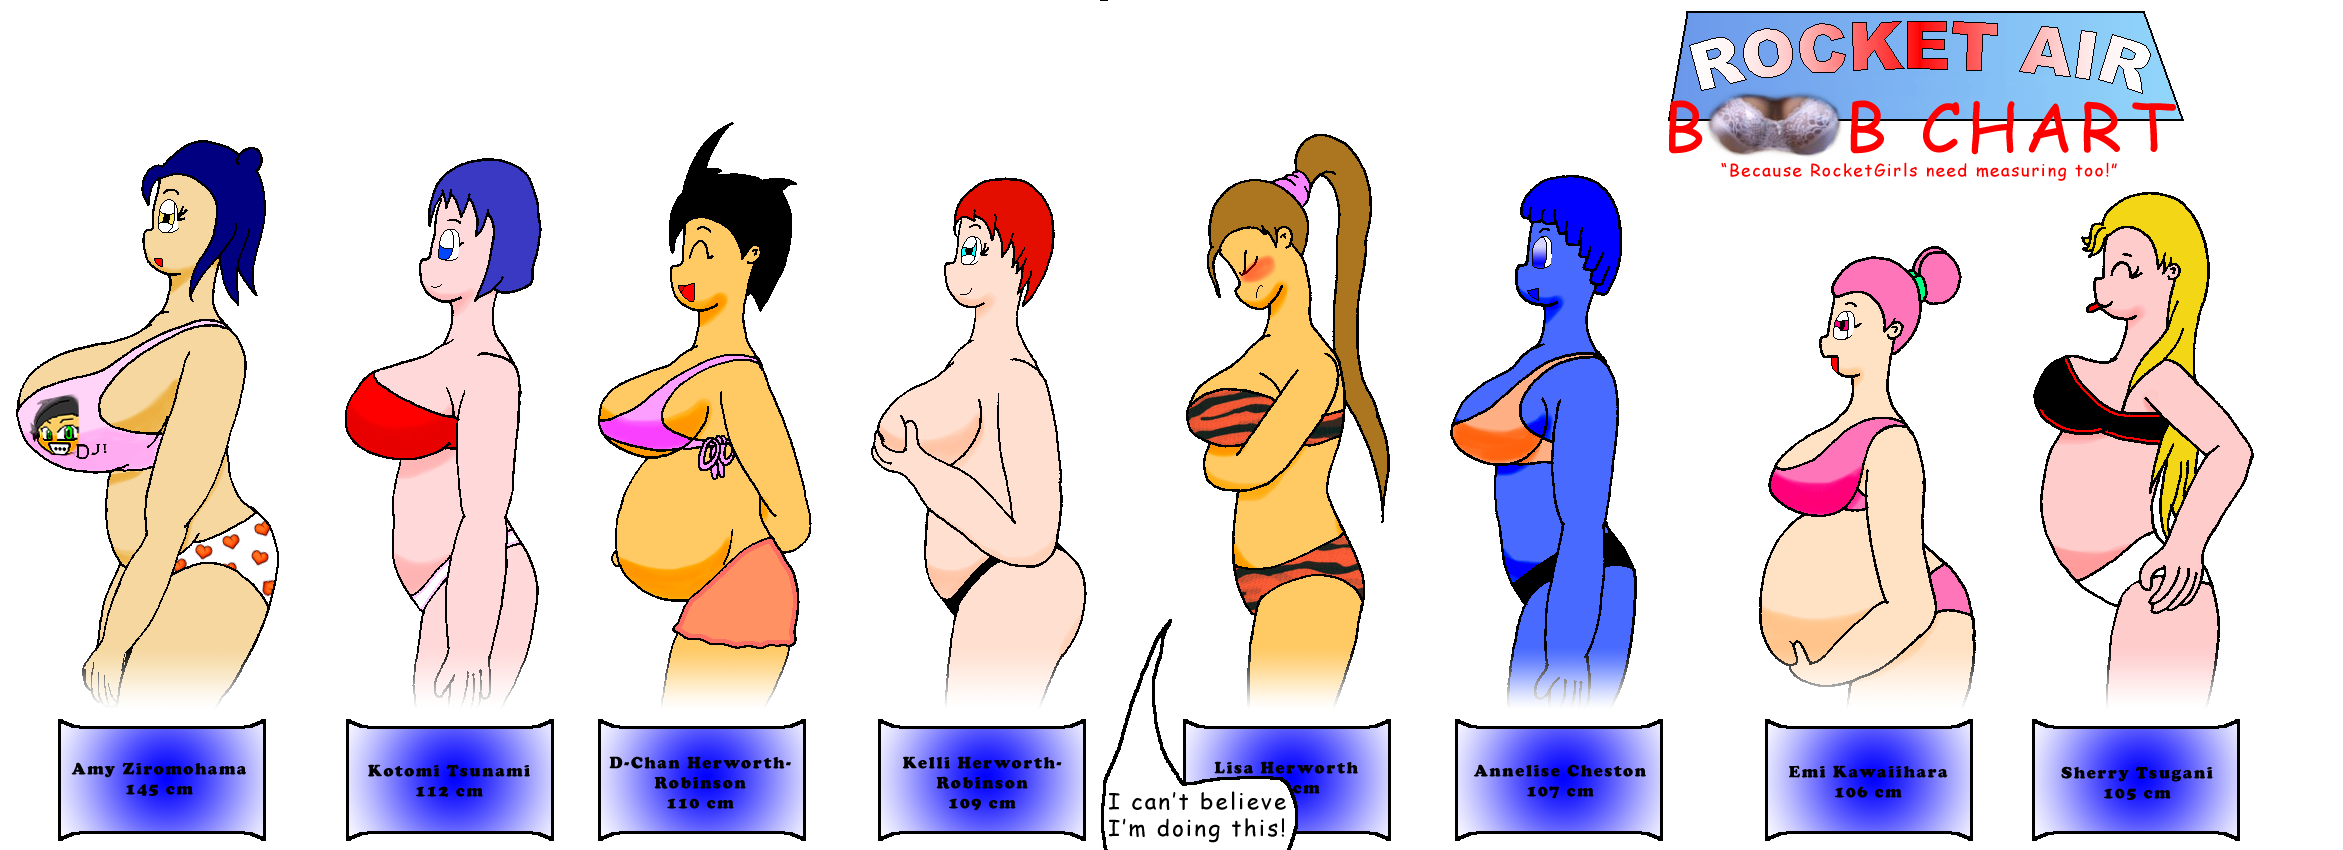 Rocket Air Boob Chart by DarkStorm2Bad